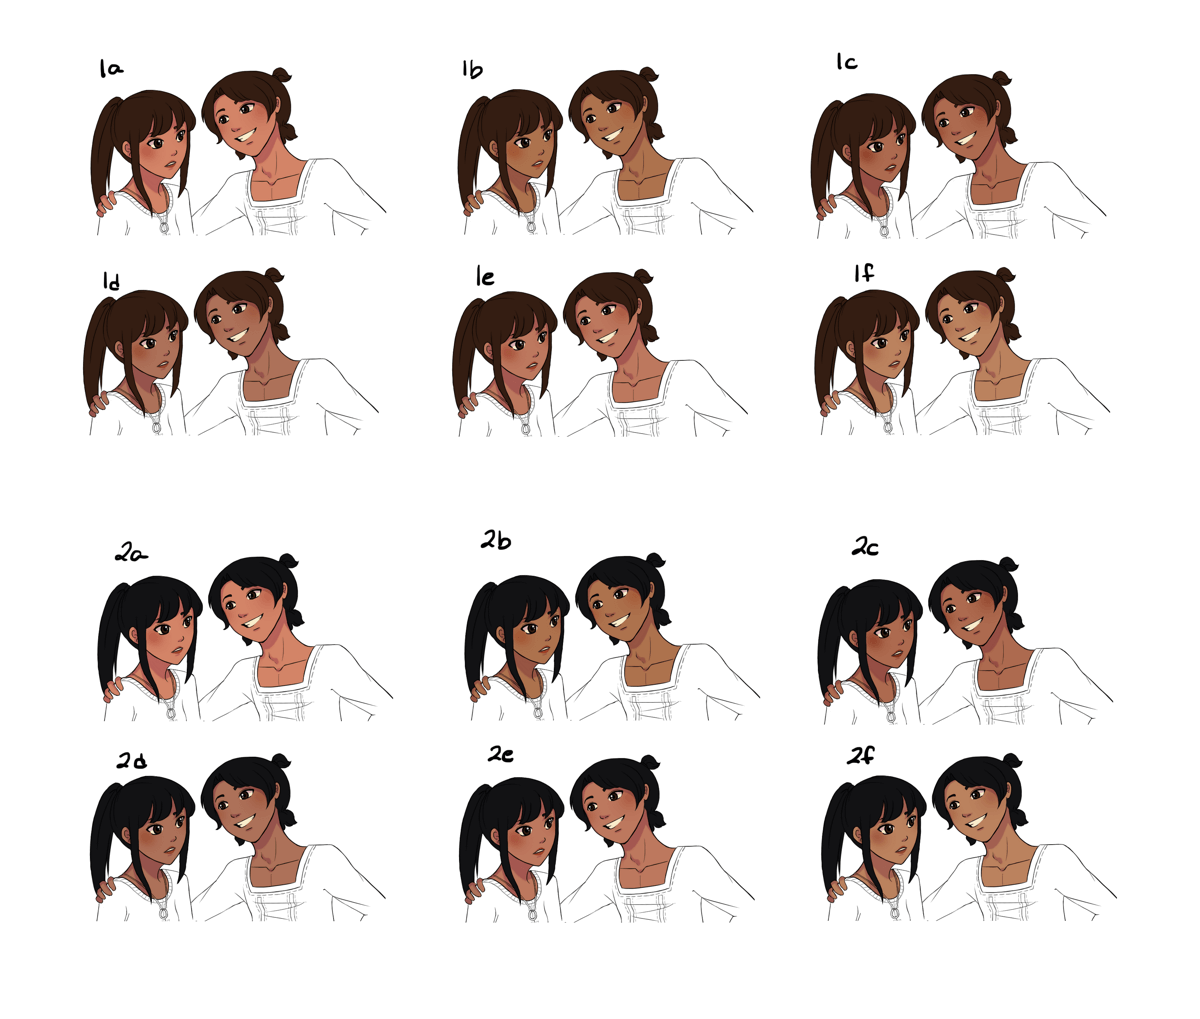 A table of different skin tones and hair colour for Sano and Anina